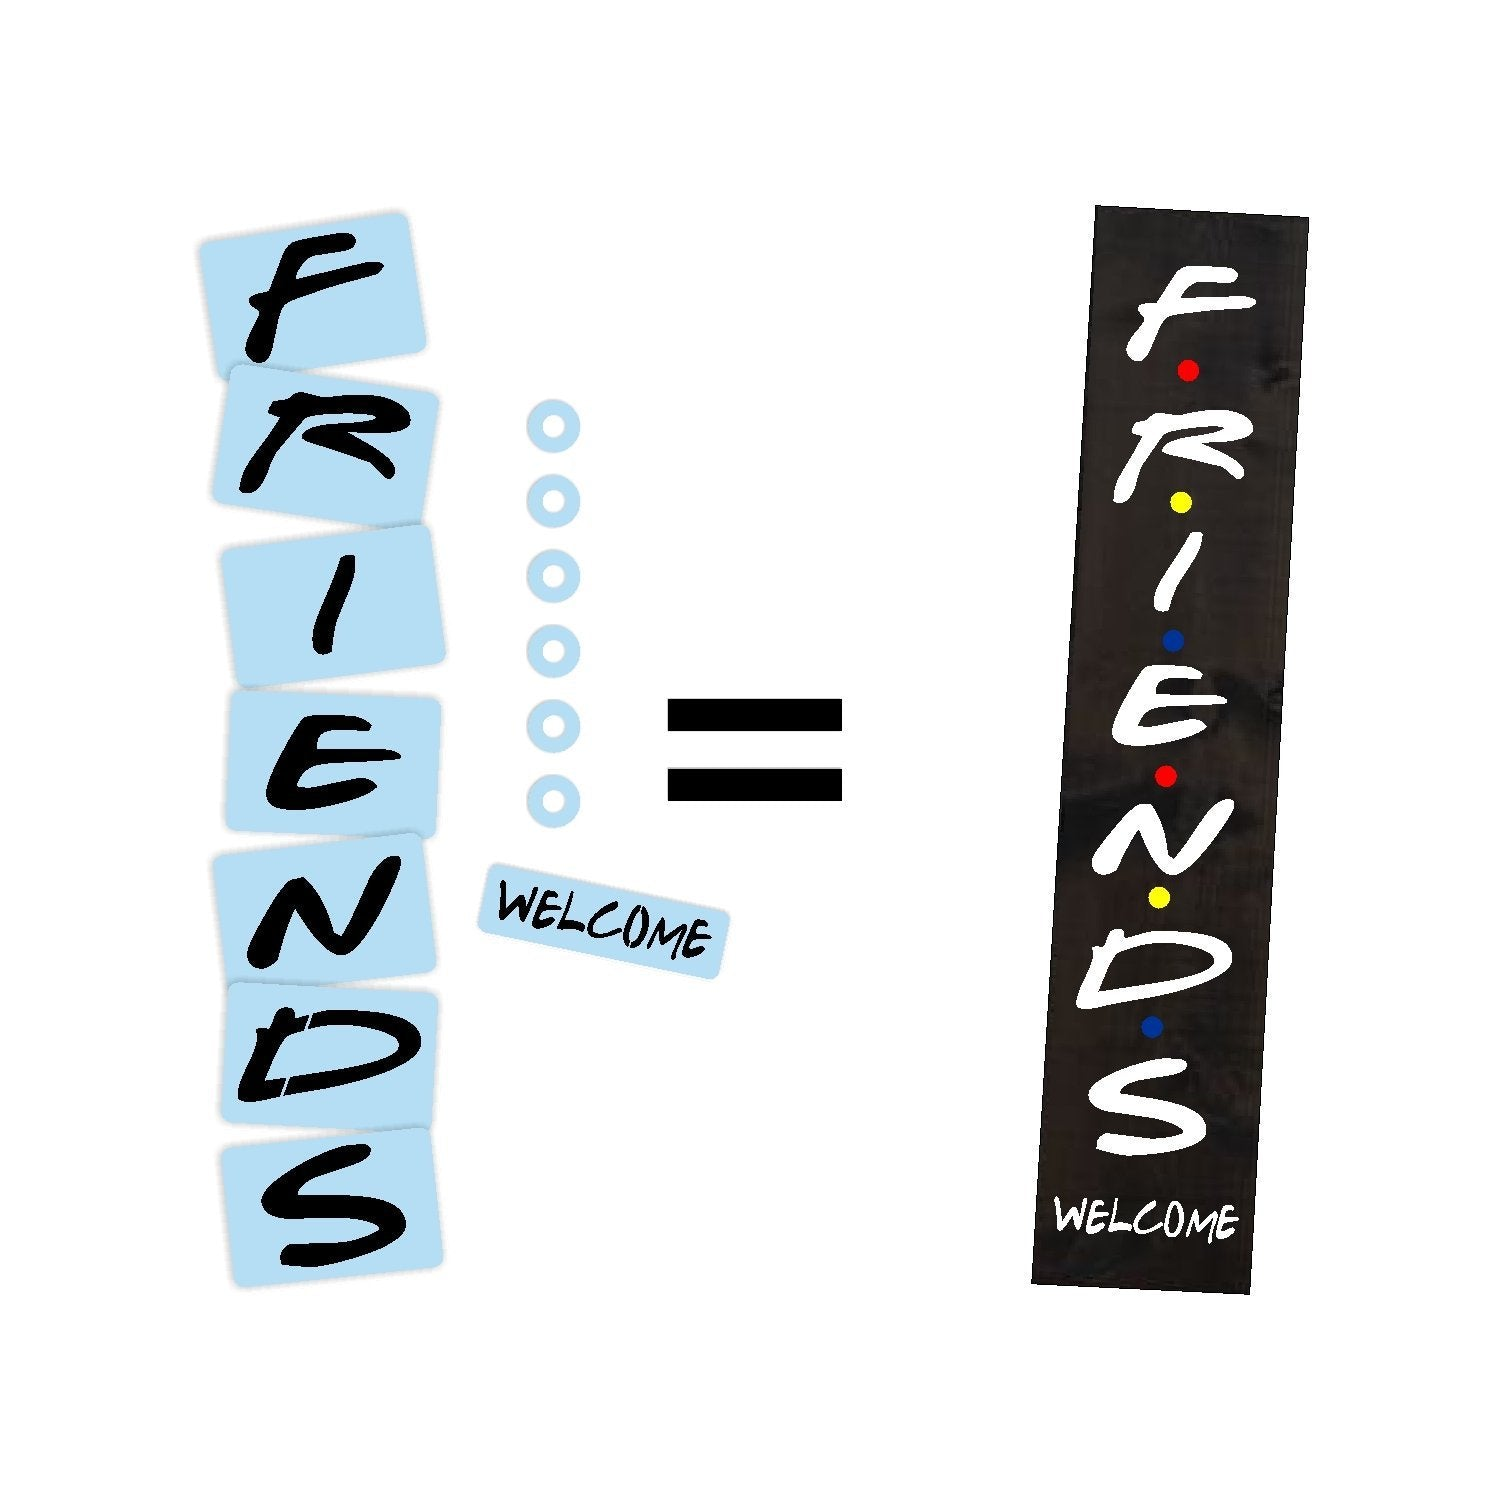 Friends TV Sitcom Show Porch Stencil For Wood Sign - Reuseable Stencil - Vertical